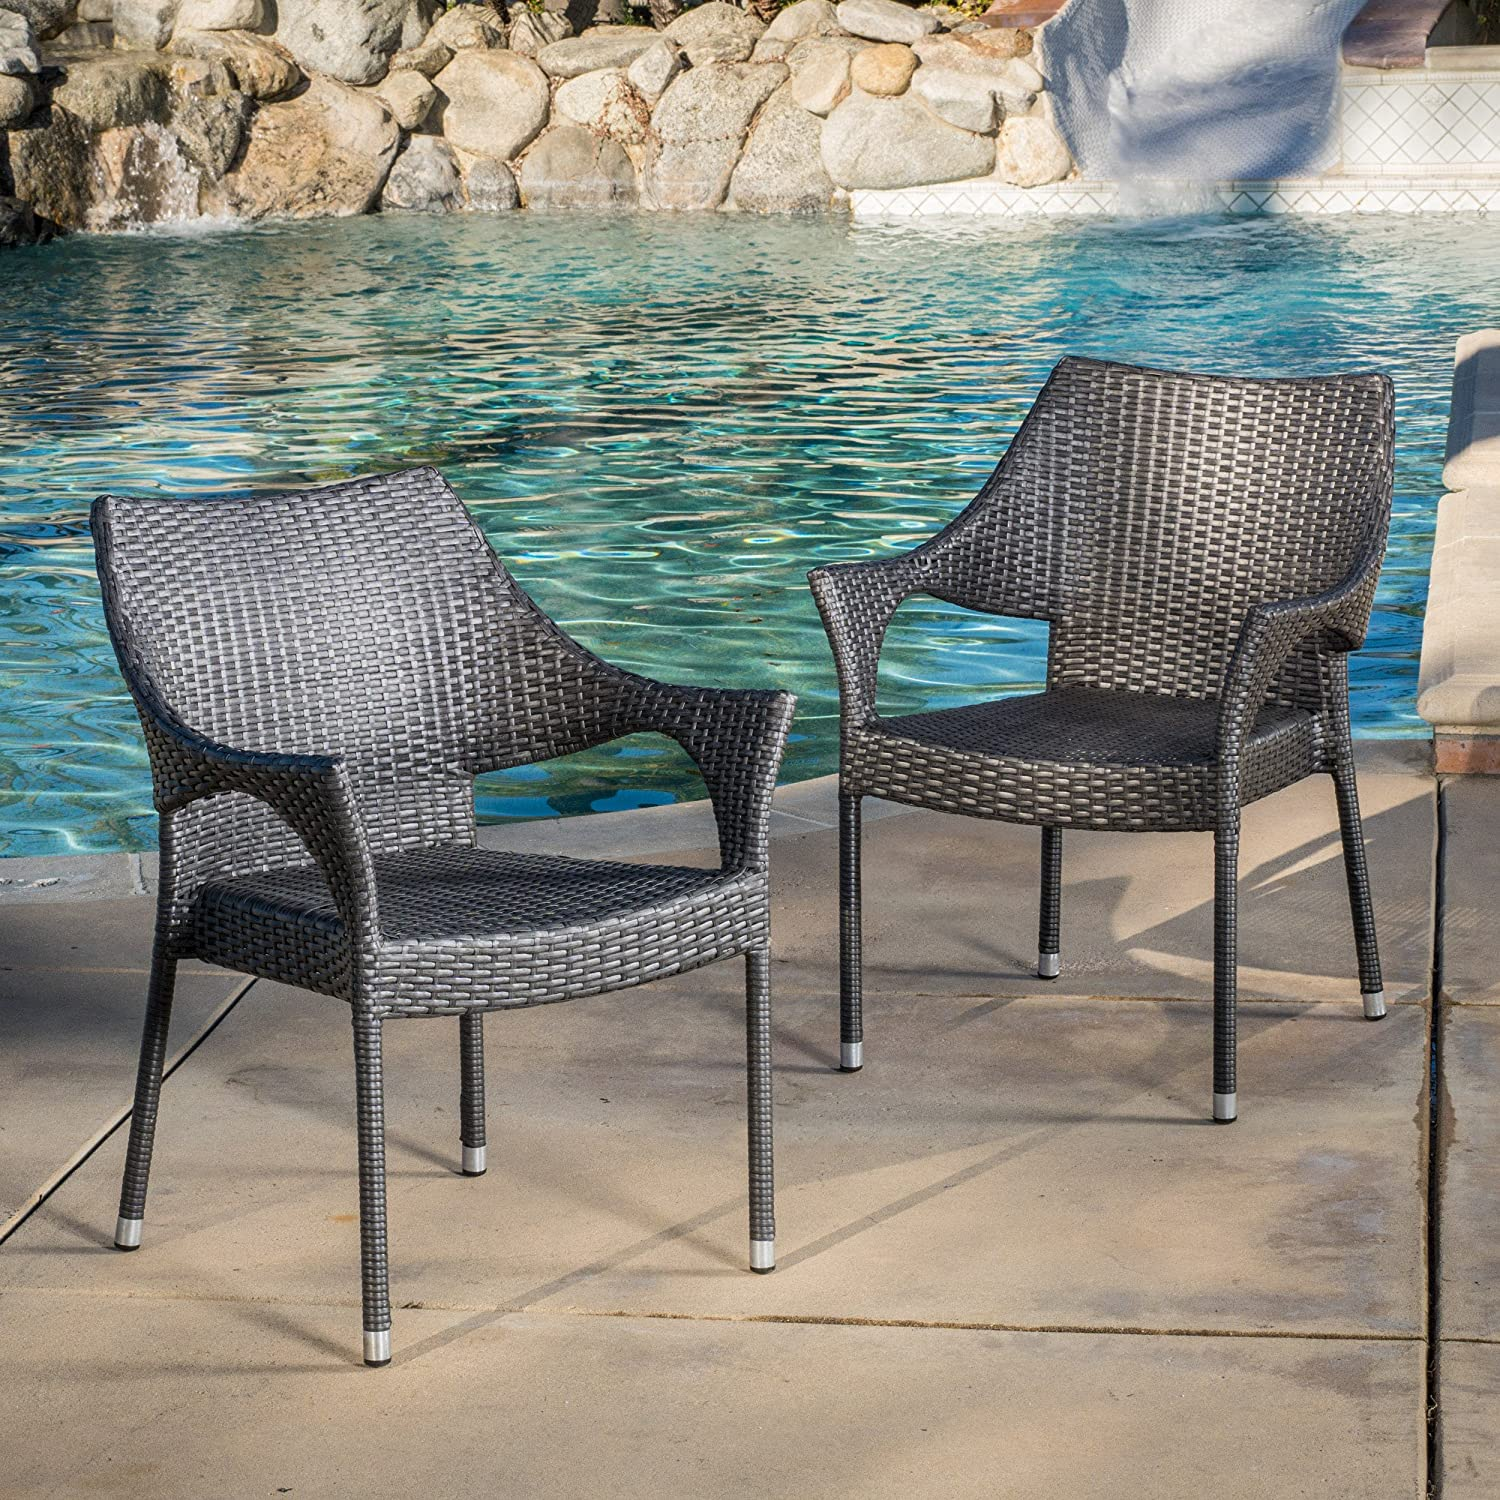 Great Deal Furniture Alameda Outdoor Wicker Chairs Set of 2 Perfect for Patio in Grey